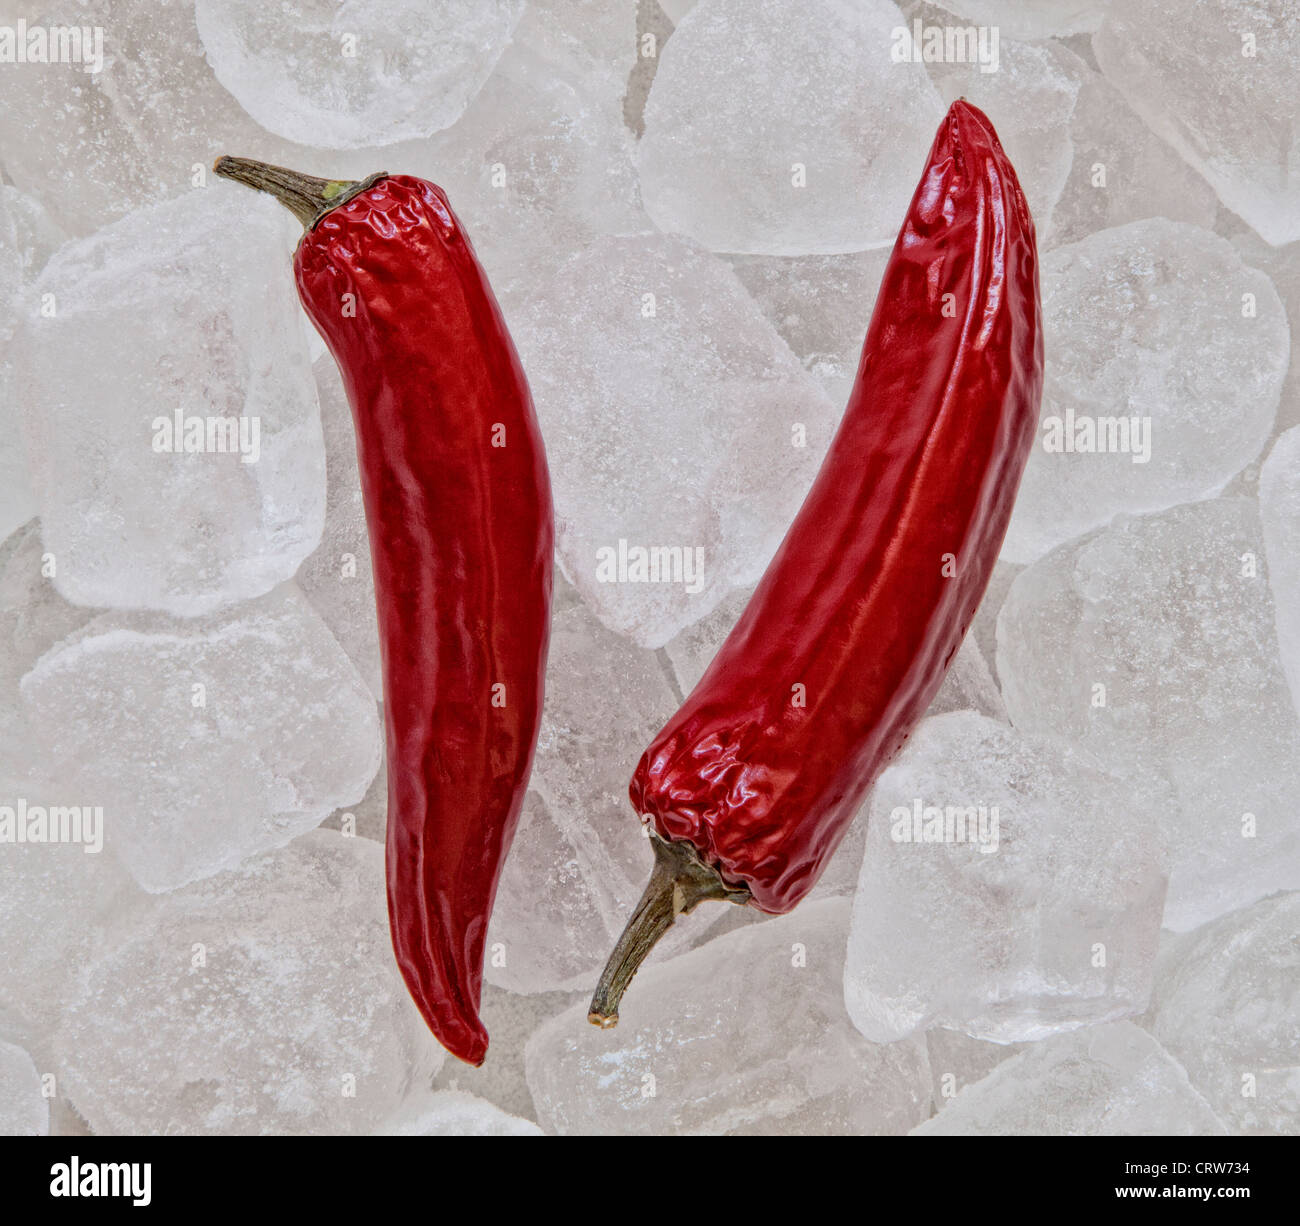 Chillies on Ice - Stock Image